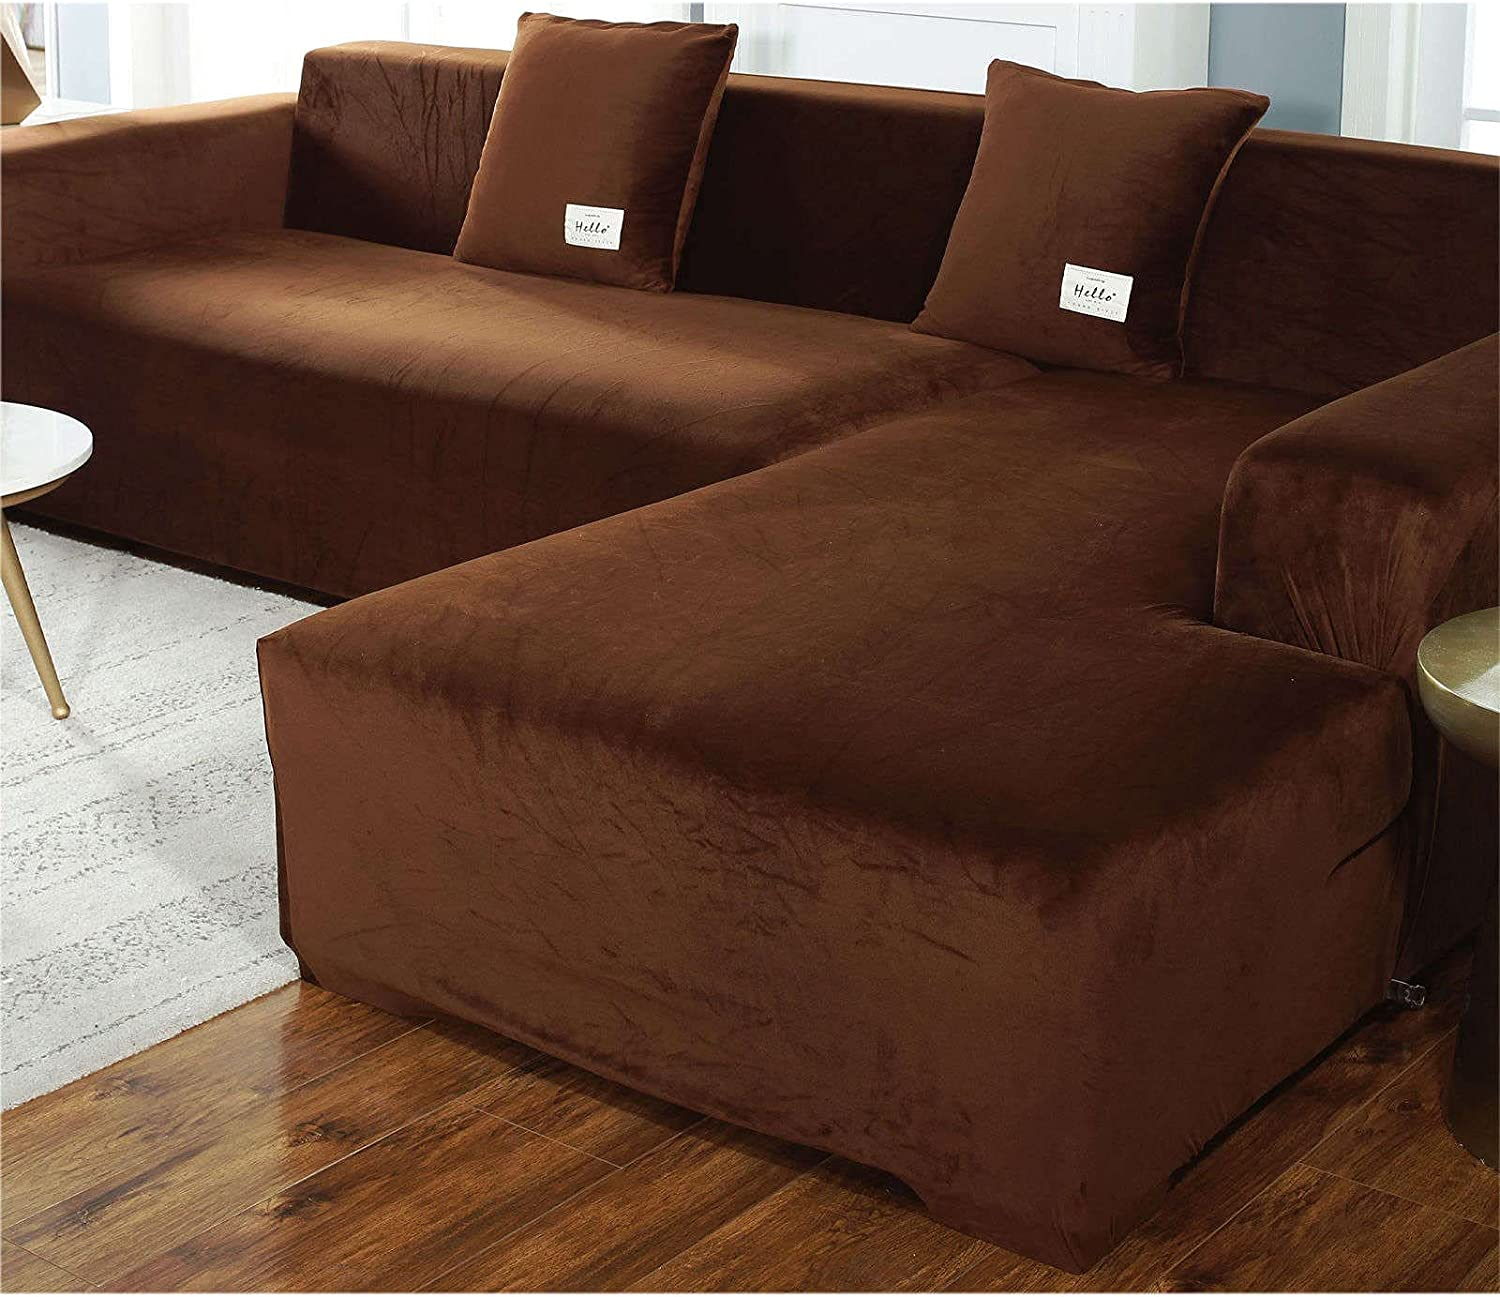 Velvet Plush Stretch Sofa Slipcover Sectional Max 45% OFF Animer and price revision Soft Couc 2 Piece